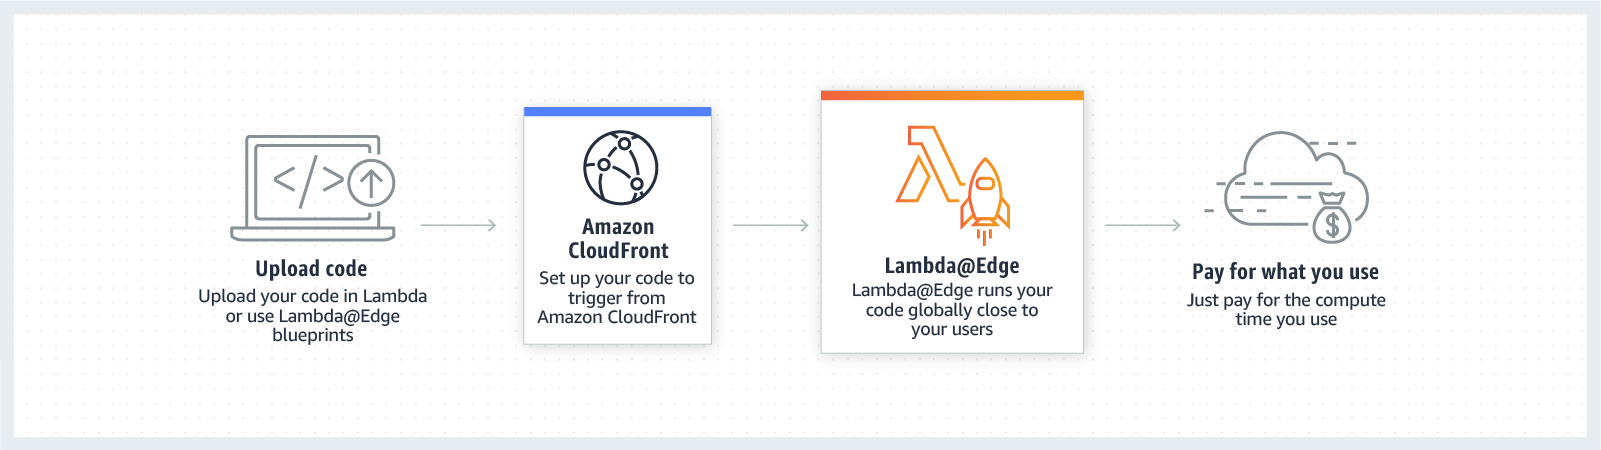 AWS Lambda@Edge: How it works